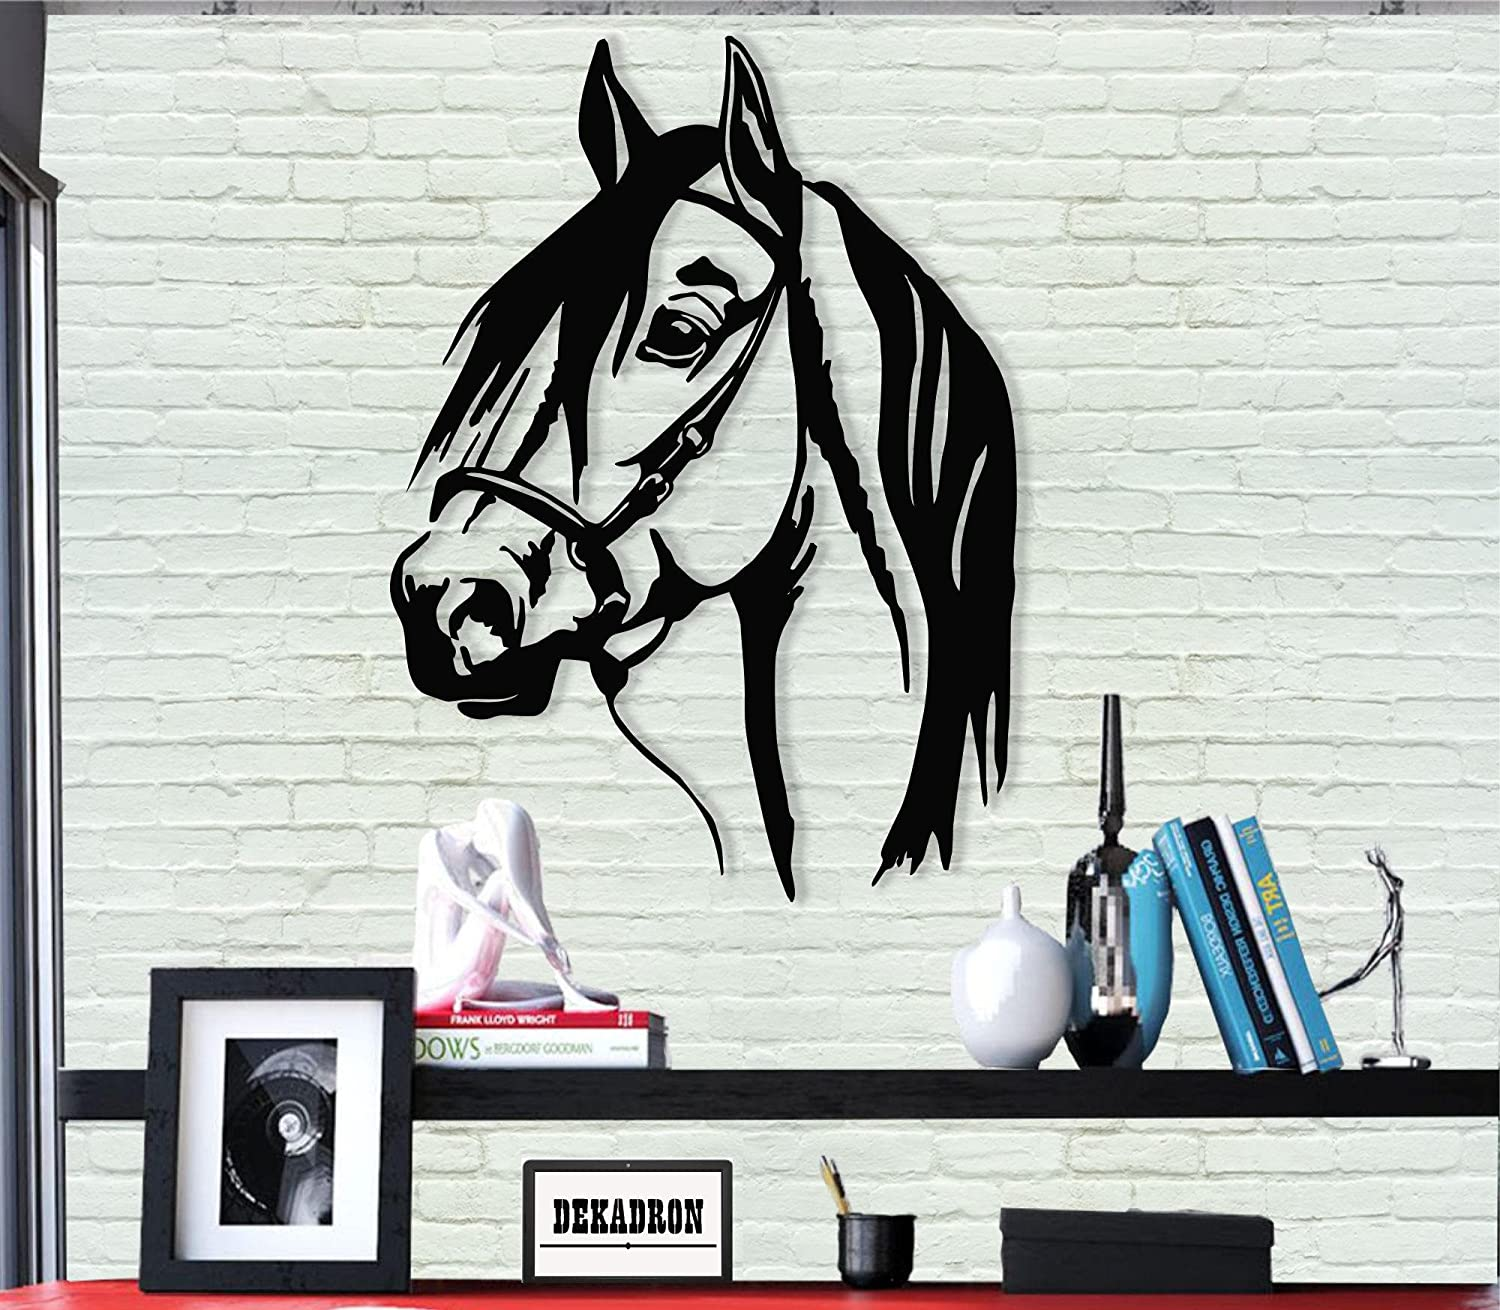 Amazon Com Metal Wall Art Horse Head 3d Wall Silhouette Metal Wall Decor Home Office Decoration Bedroom Living Room Decor Sculpture 13 W X 18 H 33x46cm Everything Else